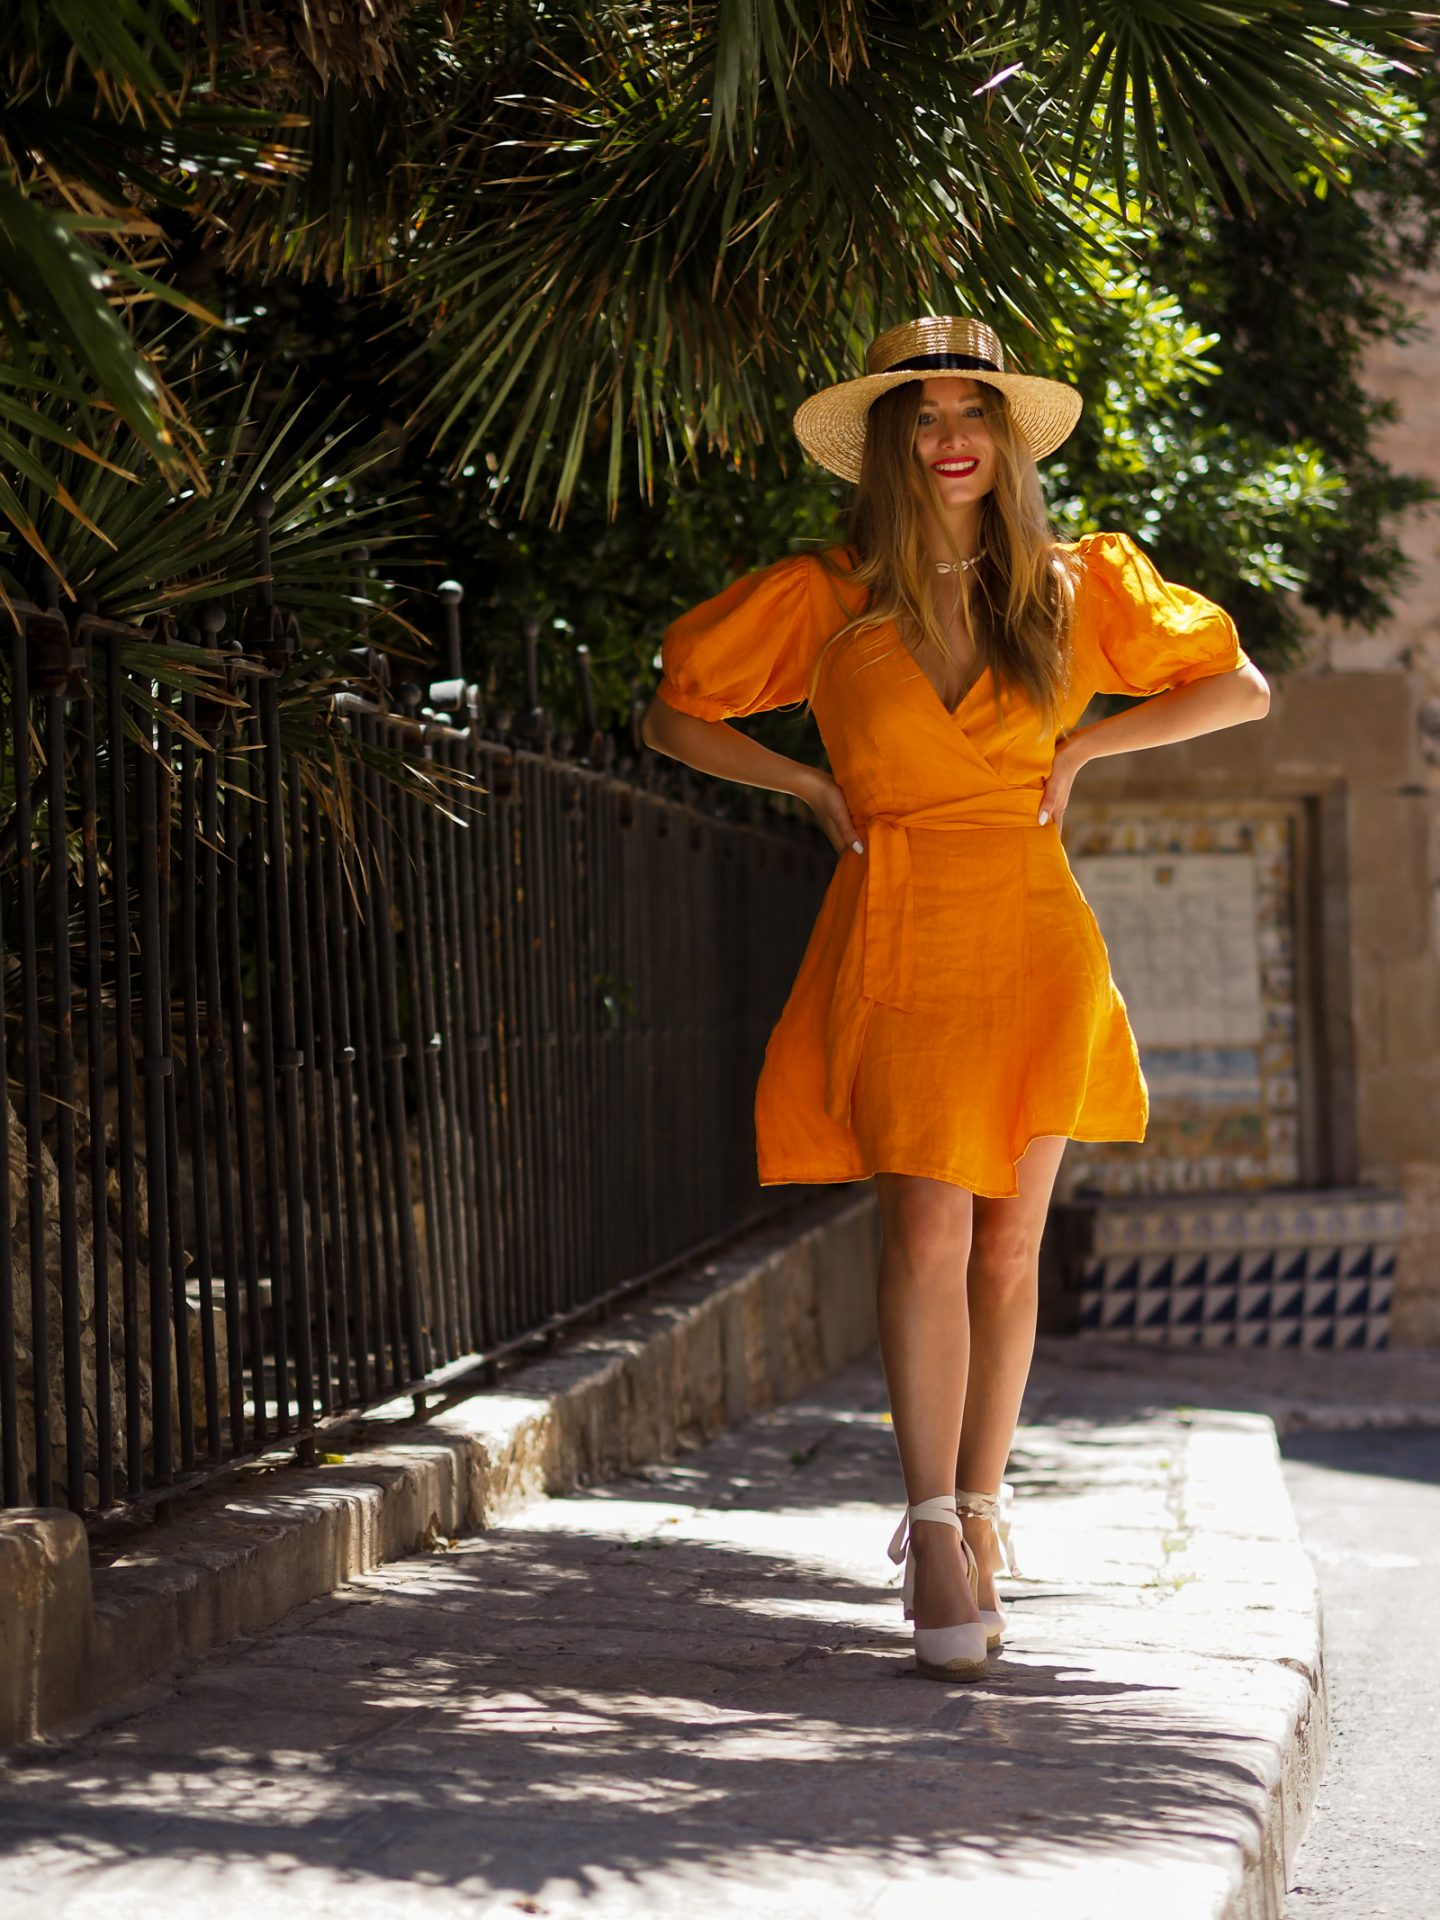 Comment porter la robe en lin jaune/orange ?